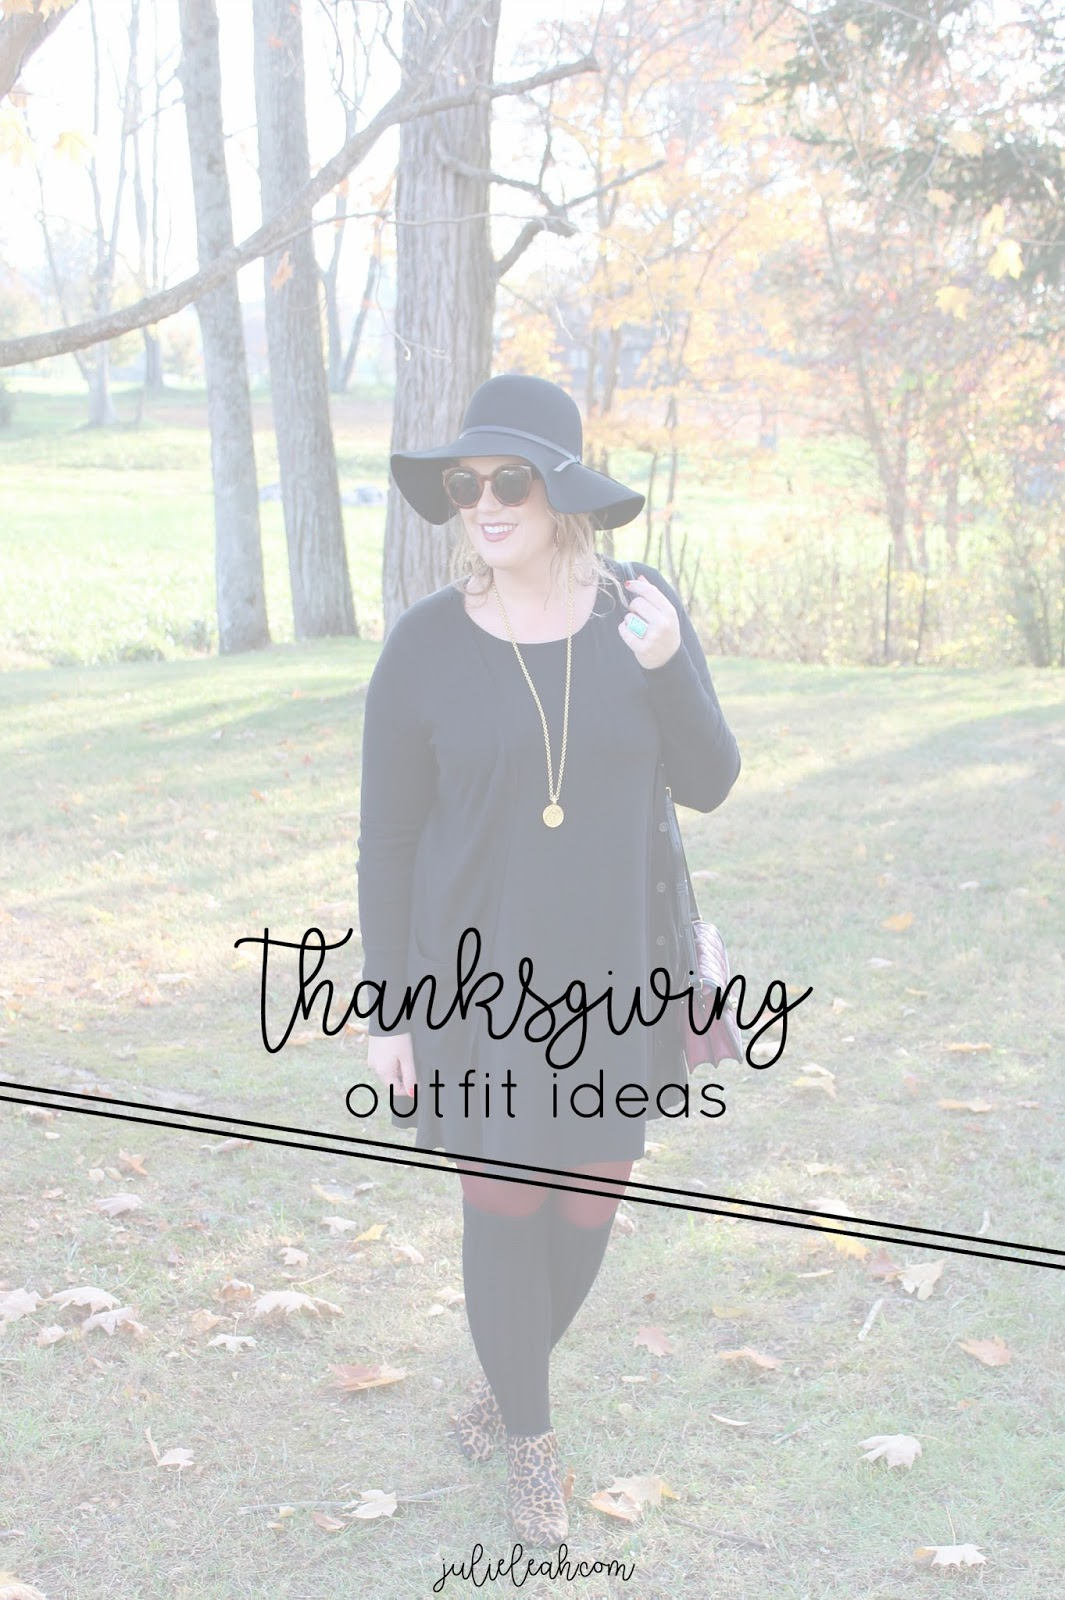 Outfit ideas for Thanksgiving